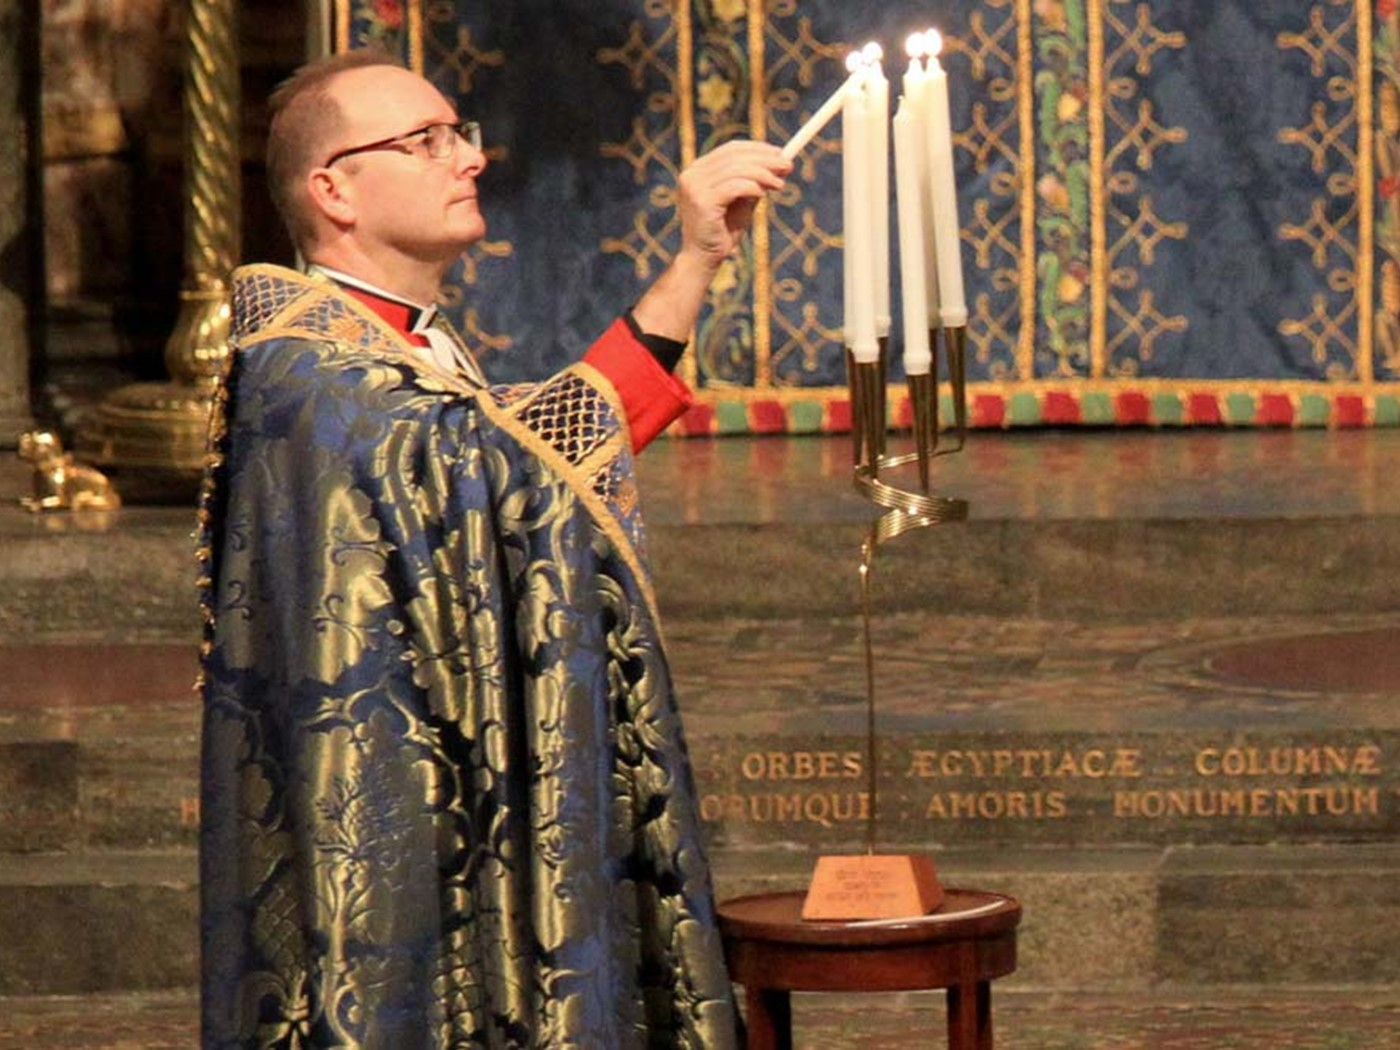 Anthony Ball, Canon in Residence, Westminster Abbey, lights a memorial candle